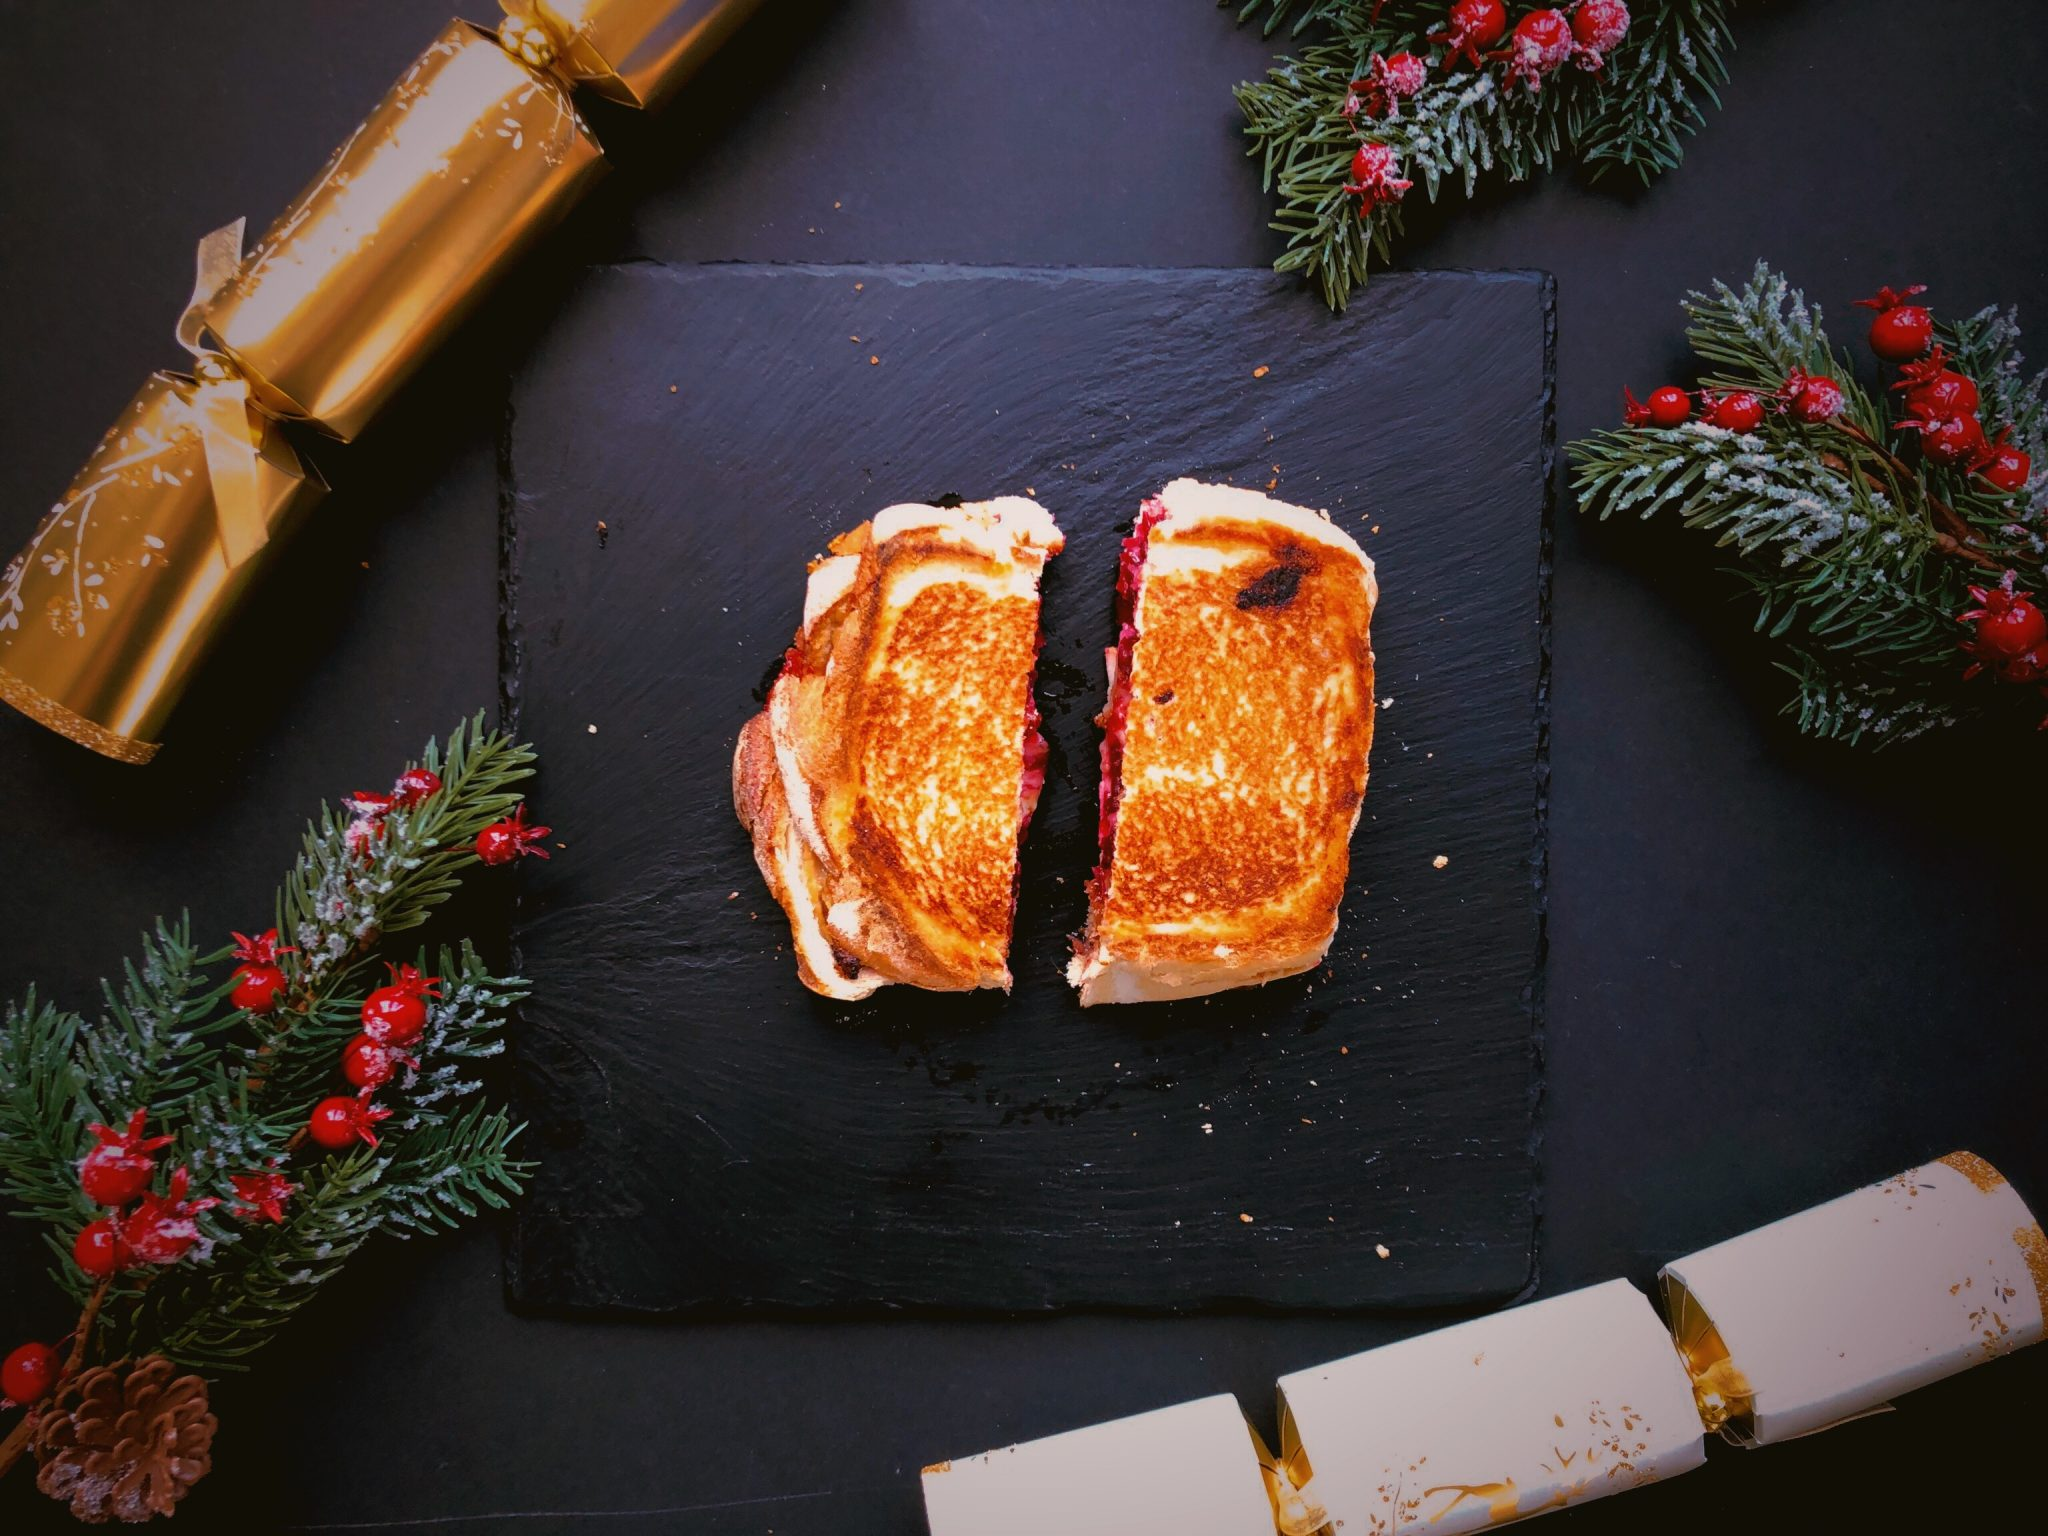 Godminster Vintage Organic Ultimate Christmas Leftover Toastie